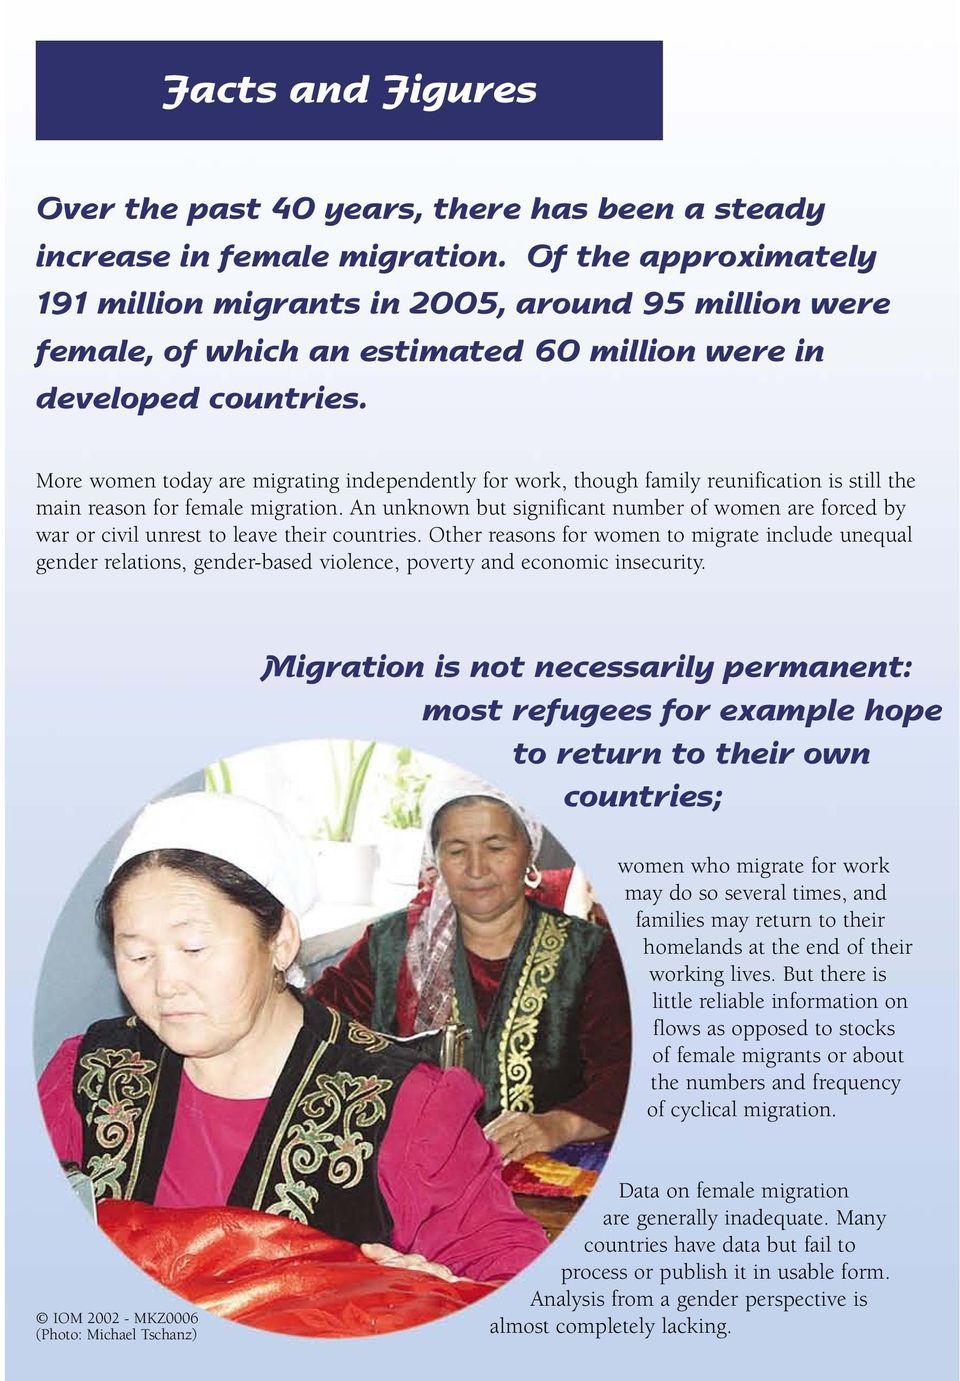 More women today are migrating independently for work, though family reunification is still the main reason for female migration.